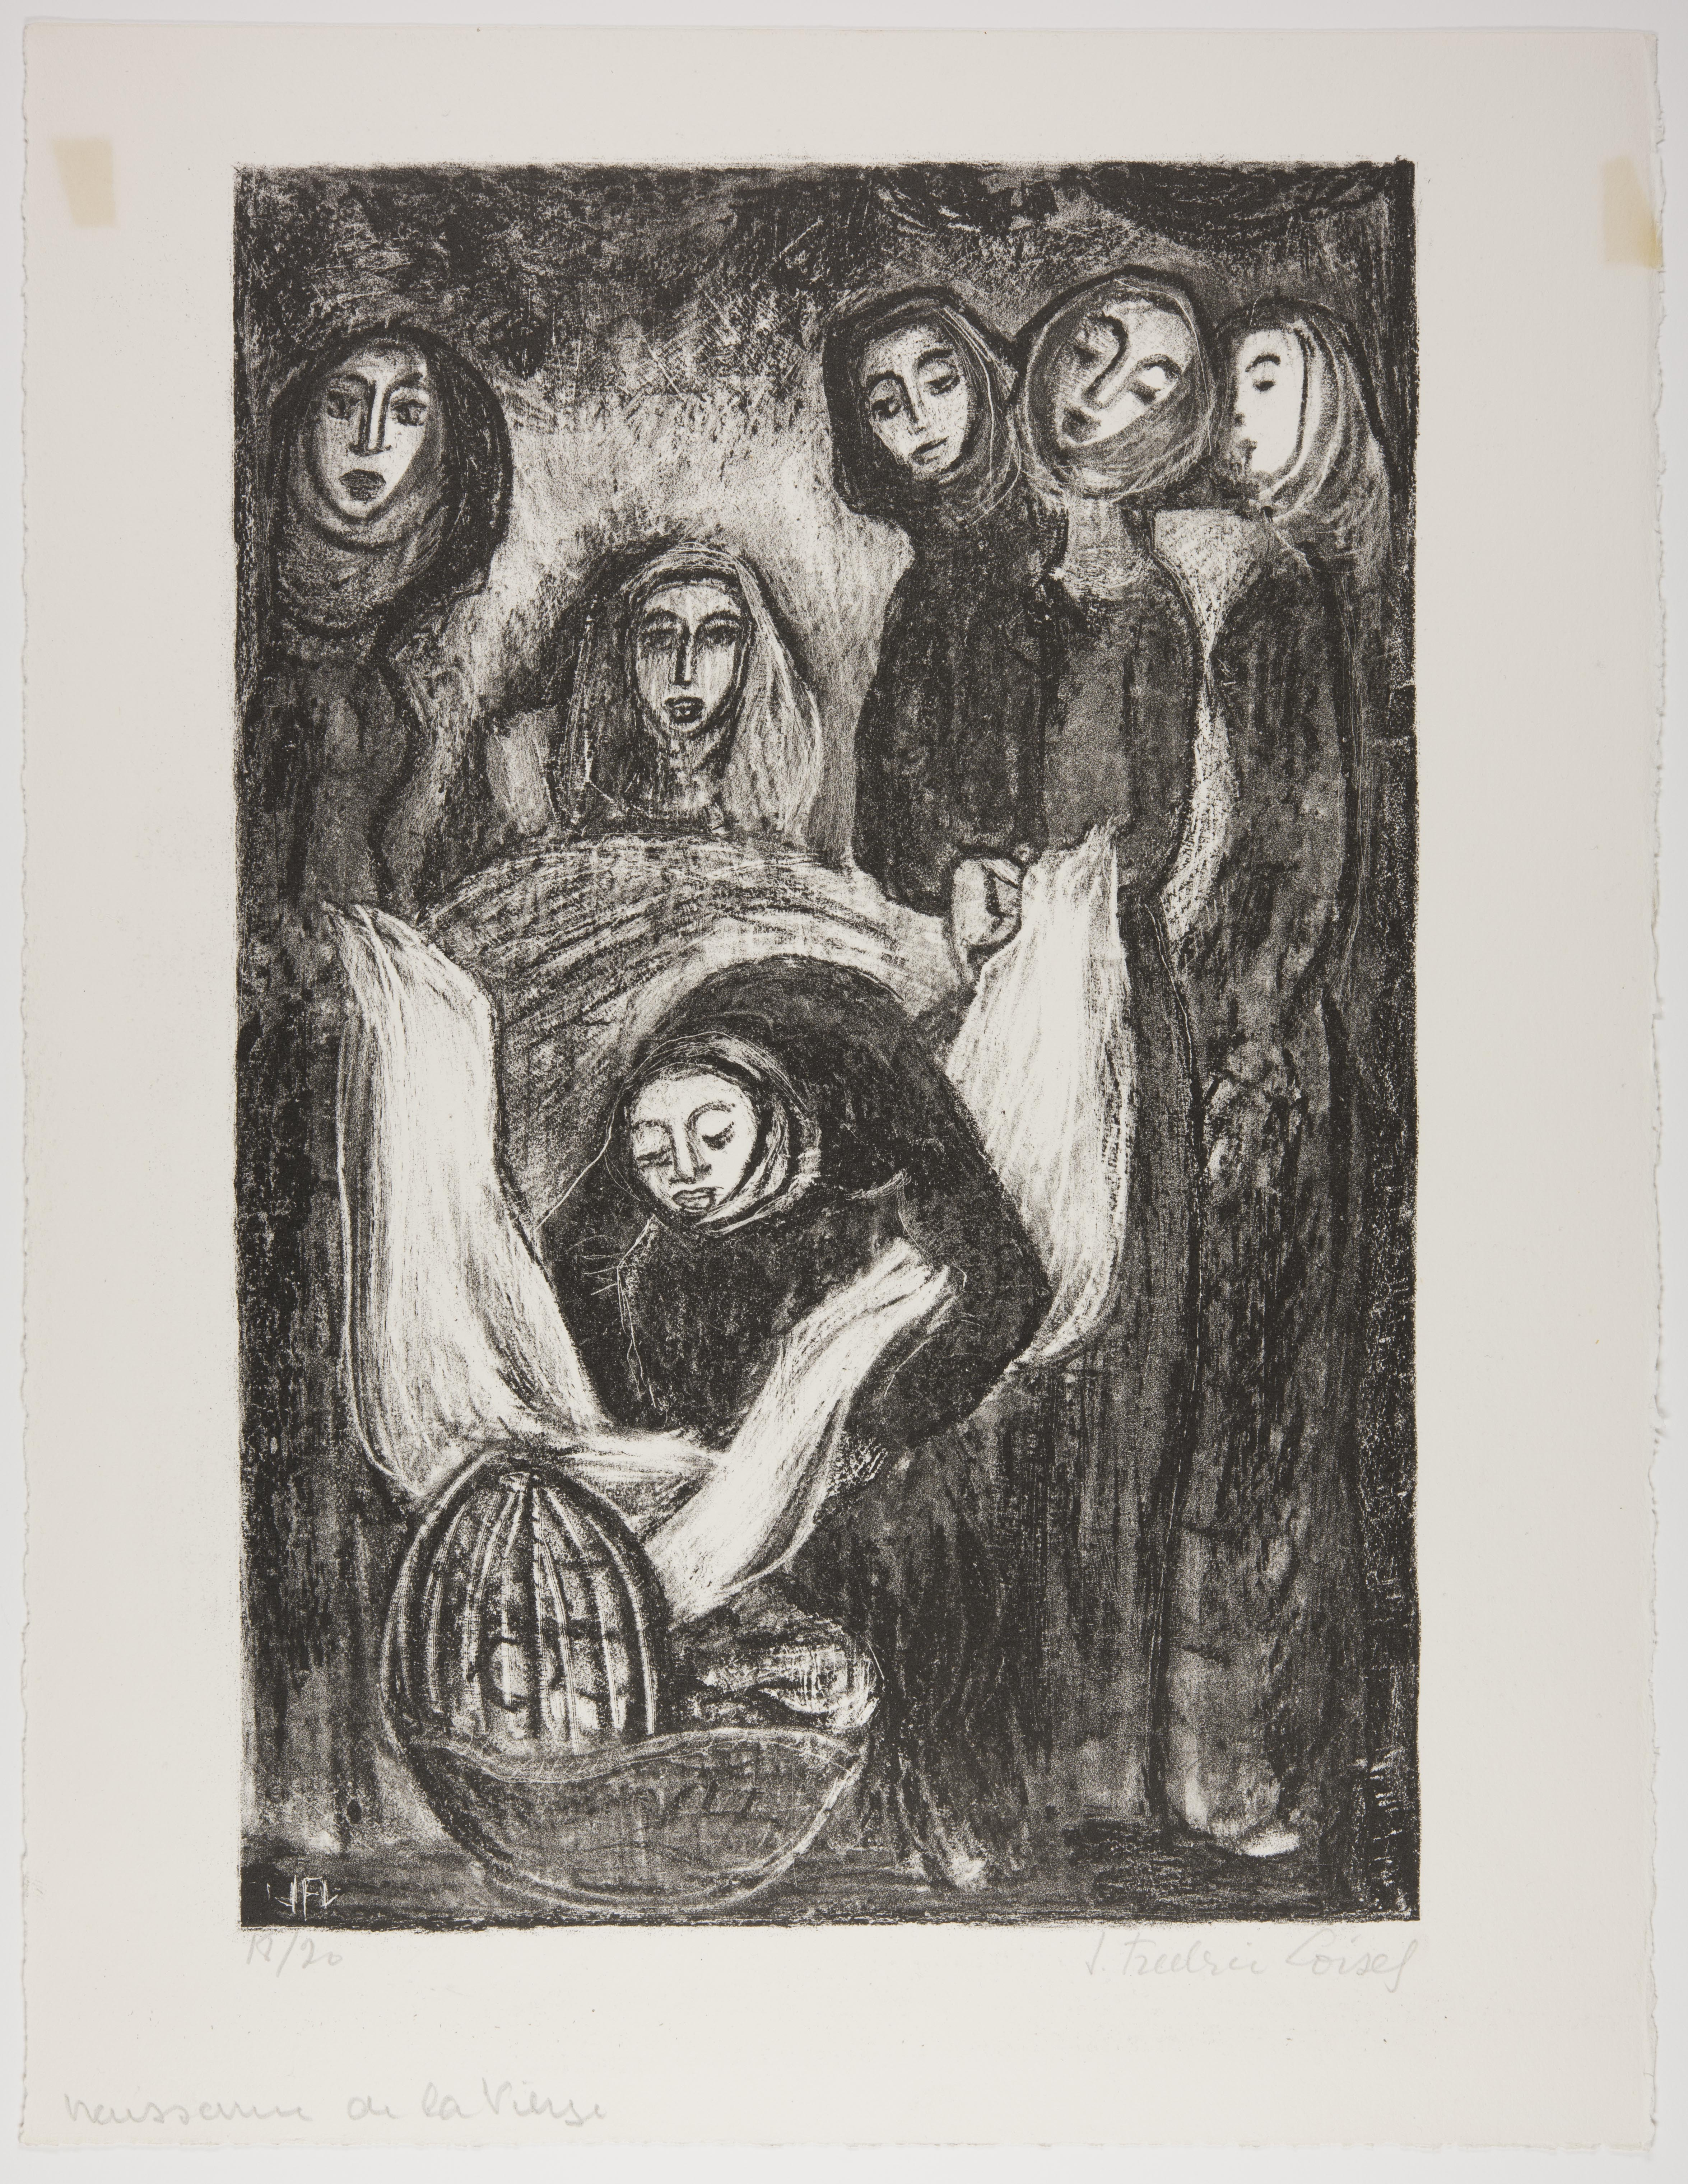 J. Frederic Loisel, Birth of the Virgin, 1949